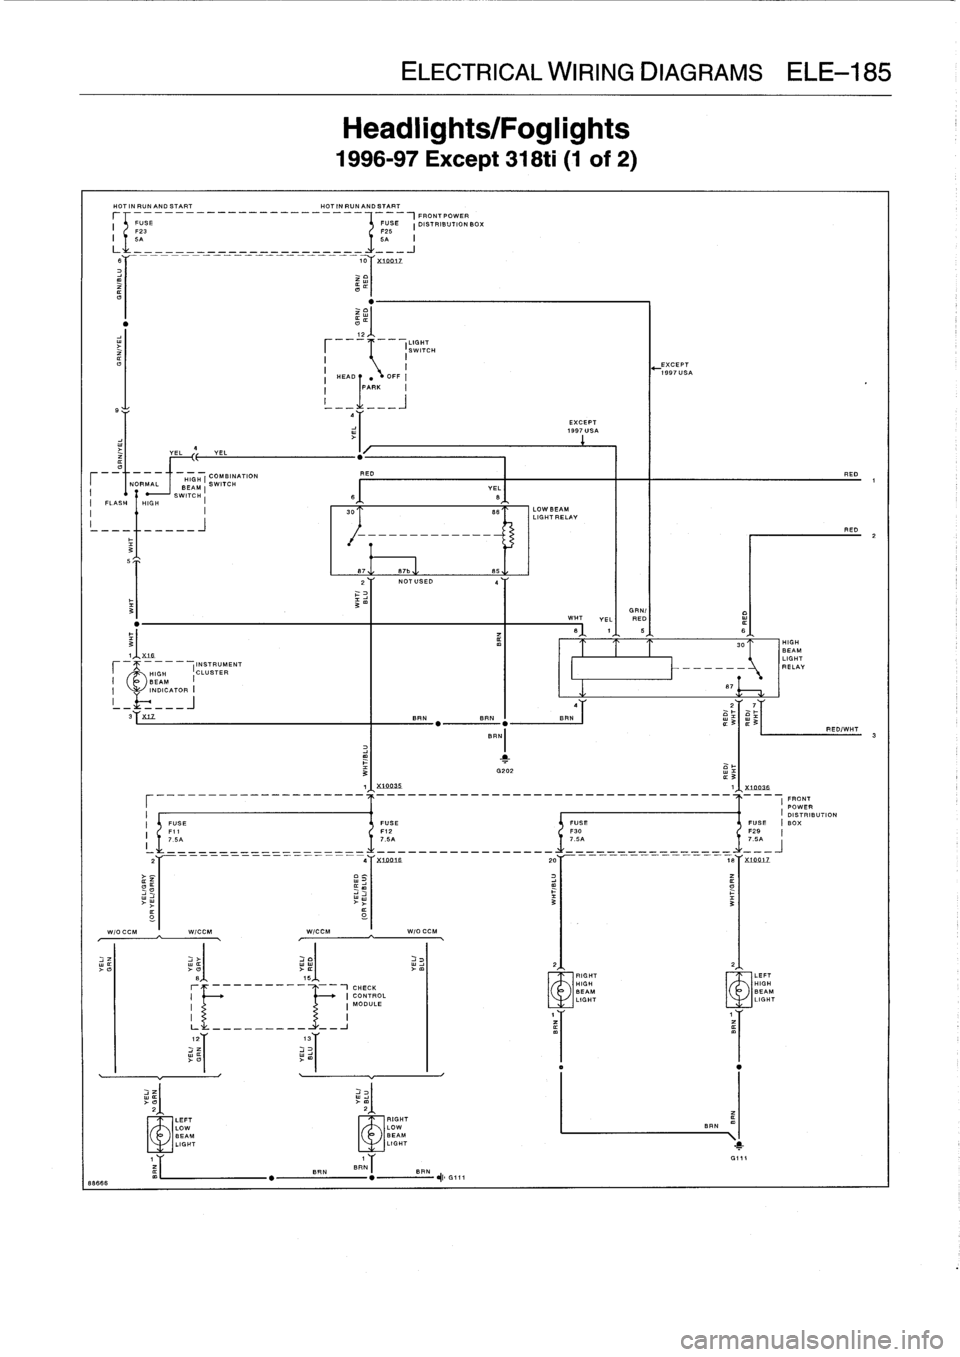 Bmw 328ci Fuse Box Diagram Daily Update Wiring 2000 Z3 2004 2003 328i